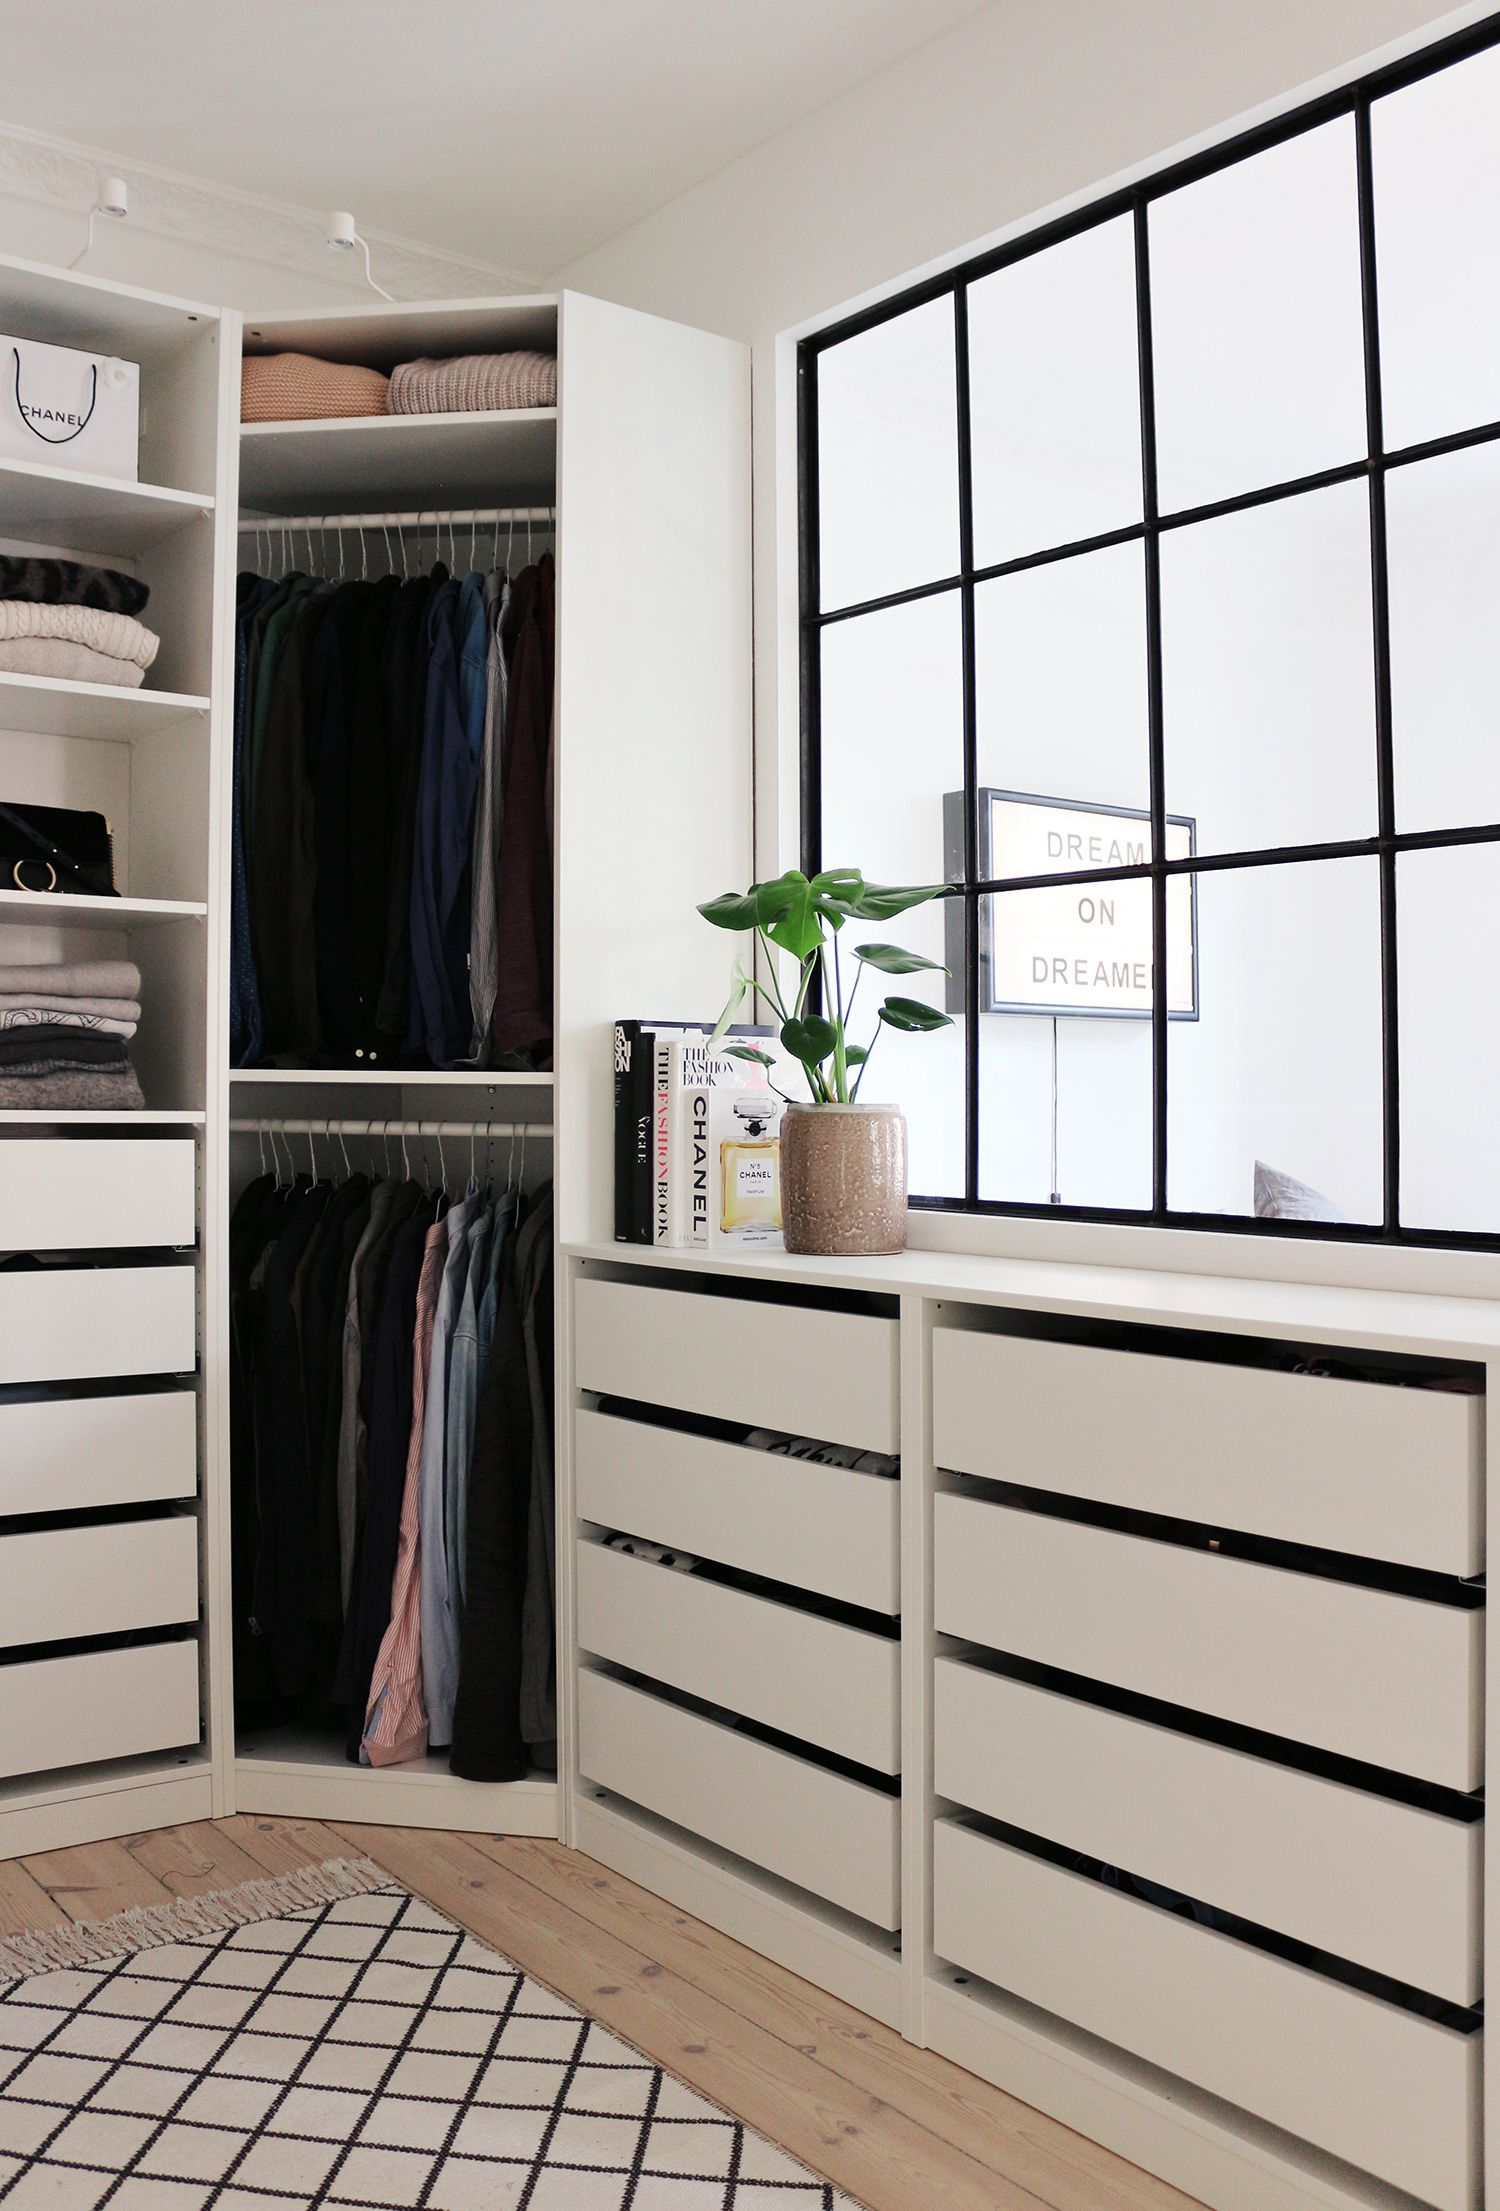 walk in closet ikea pax inspiration dressing room ankleidezimmer kleiderschrank ikea pax. Black Bedroom Furniture Sets. Home Design Ideas